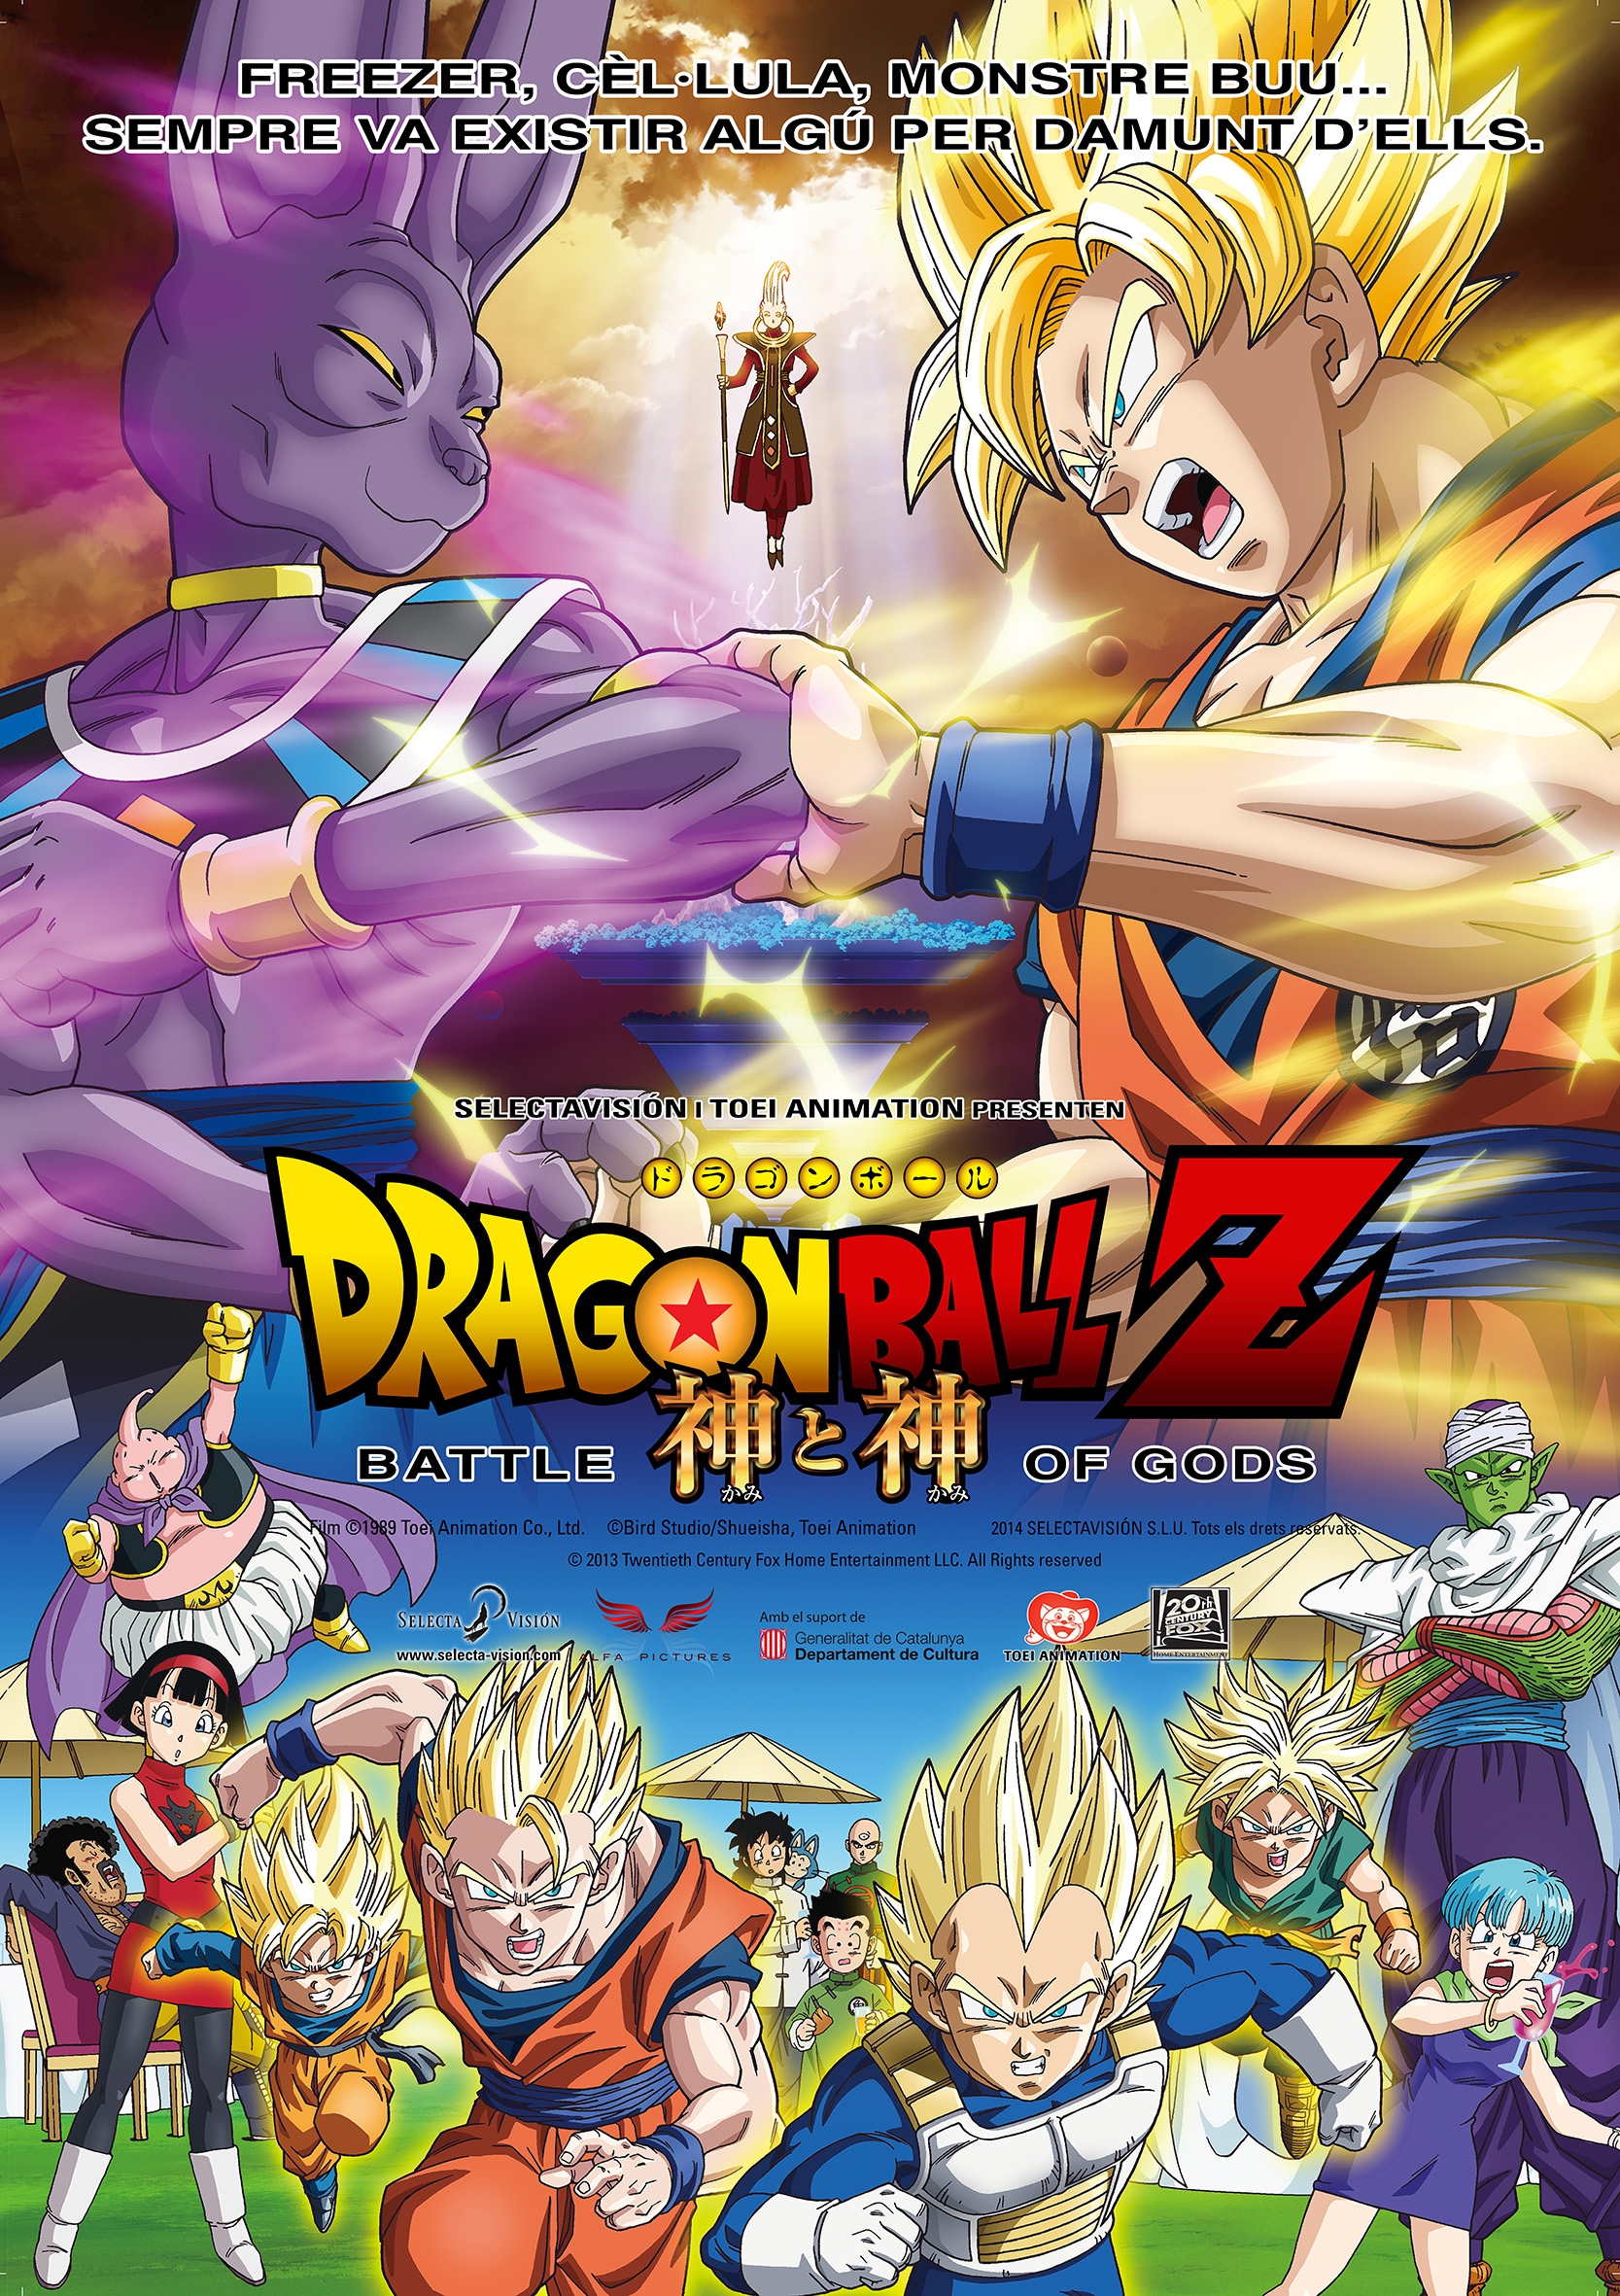 Dragon Ball Z Battle of Gods catala